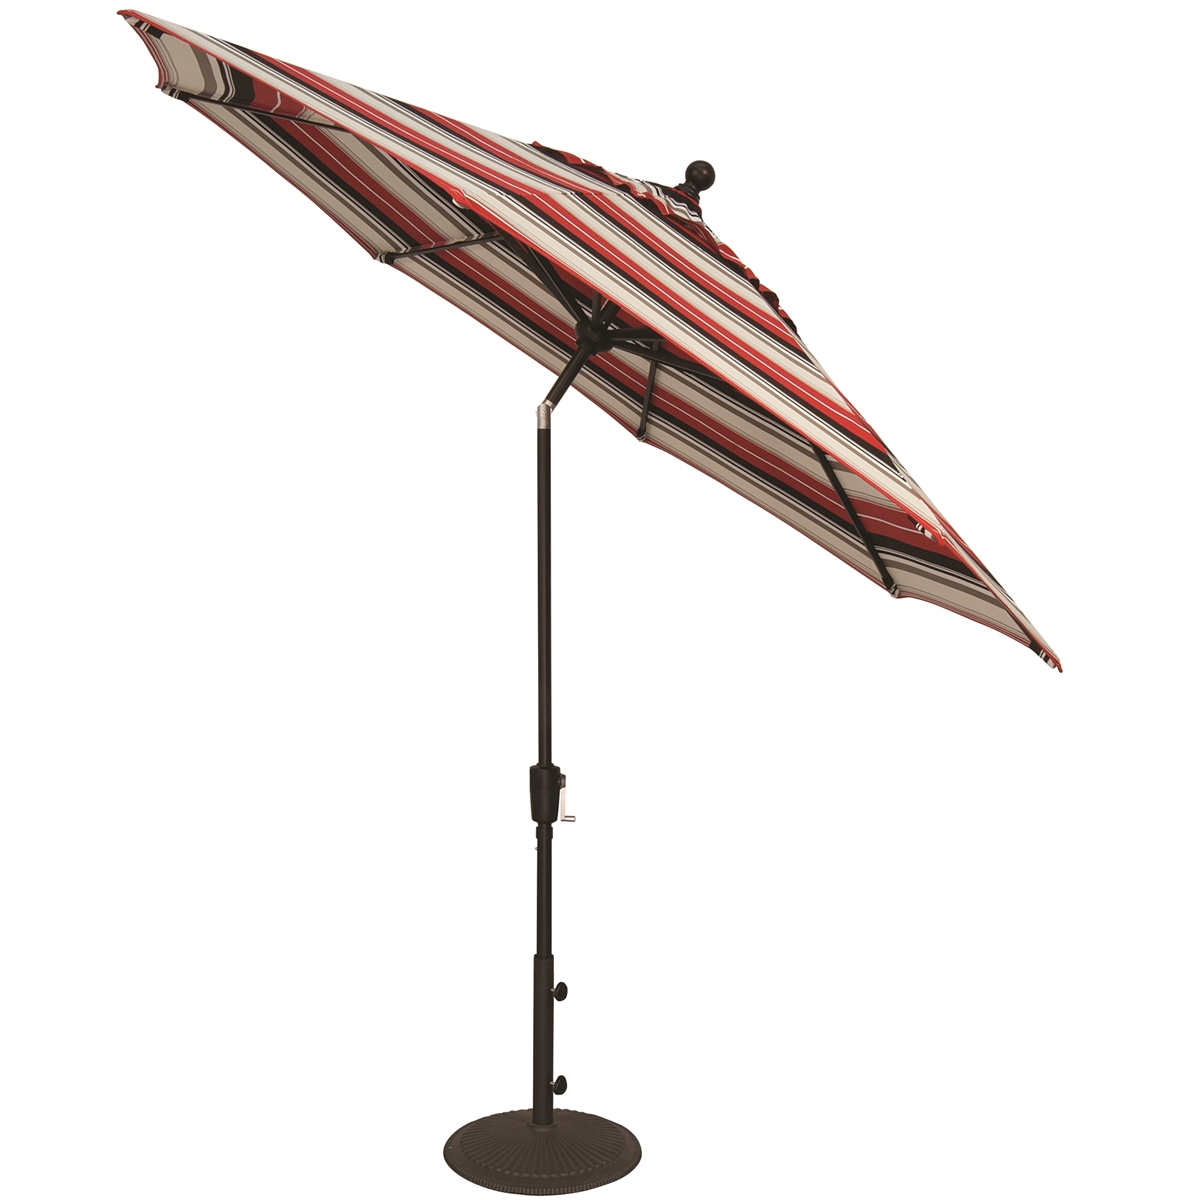 Treasure Garden Aluminum 9' Button Tilt Market Umbrella